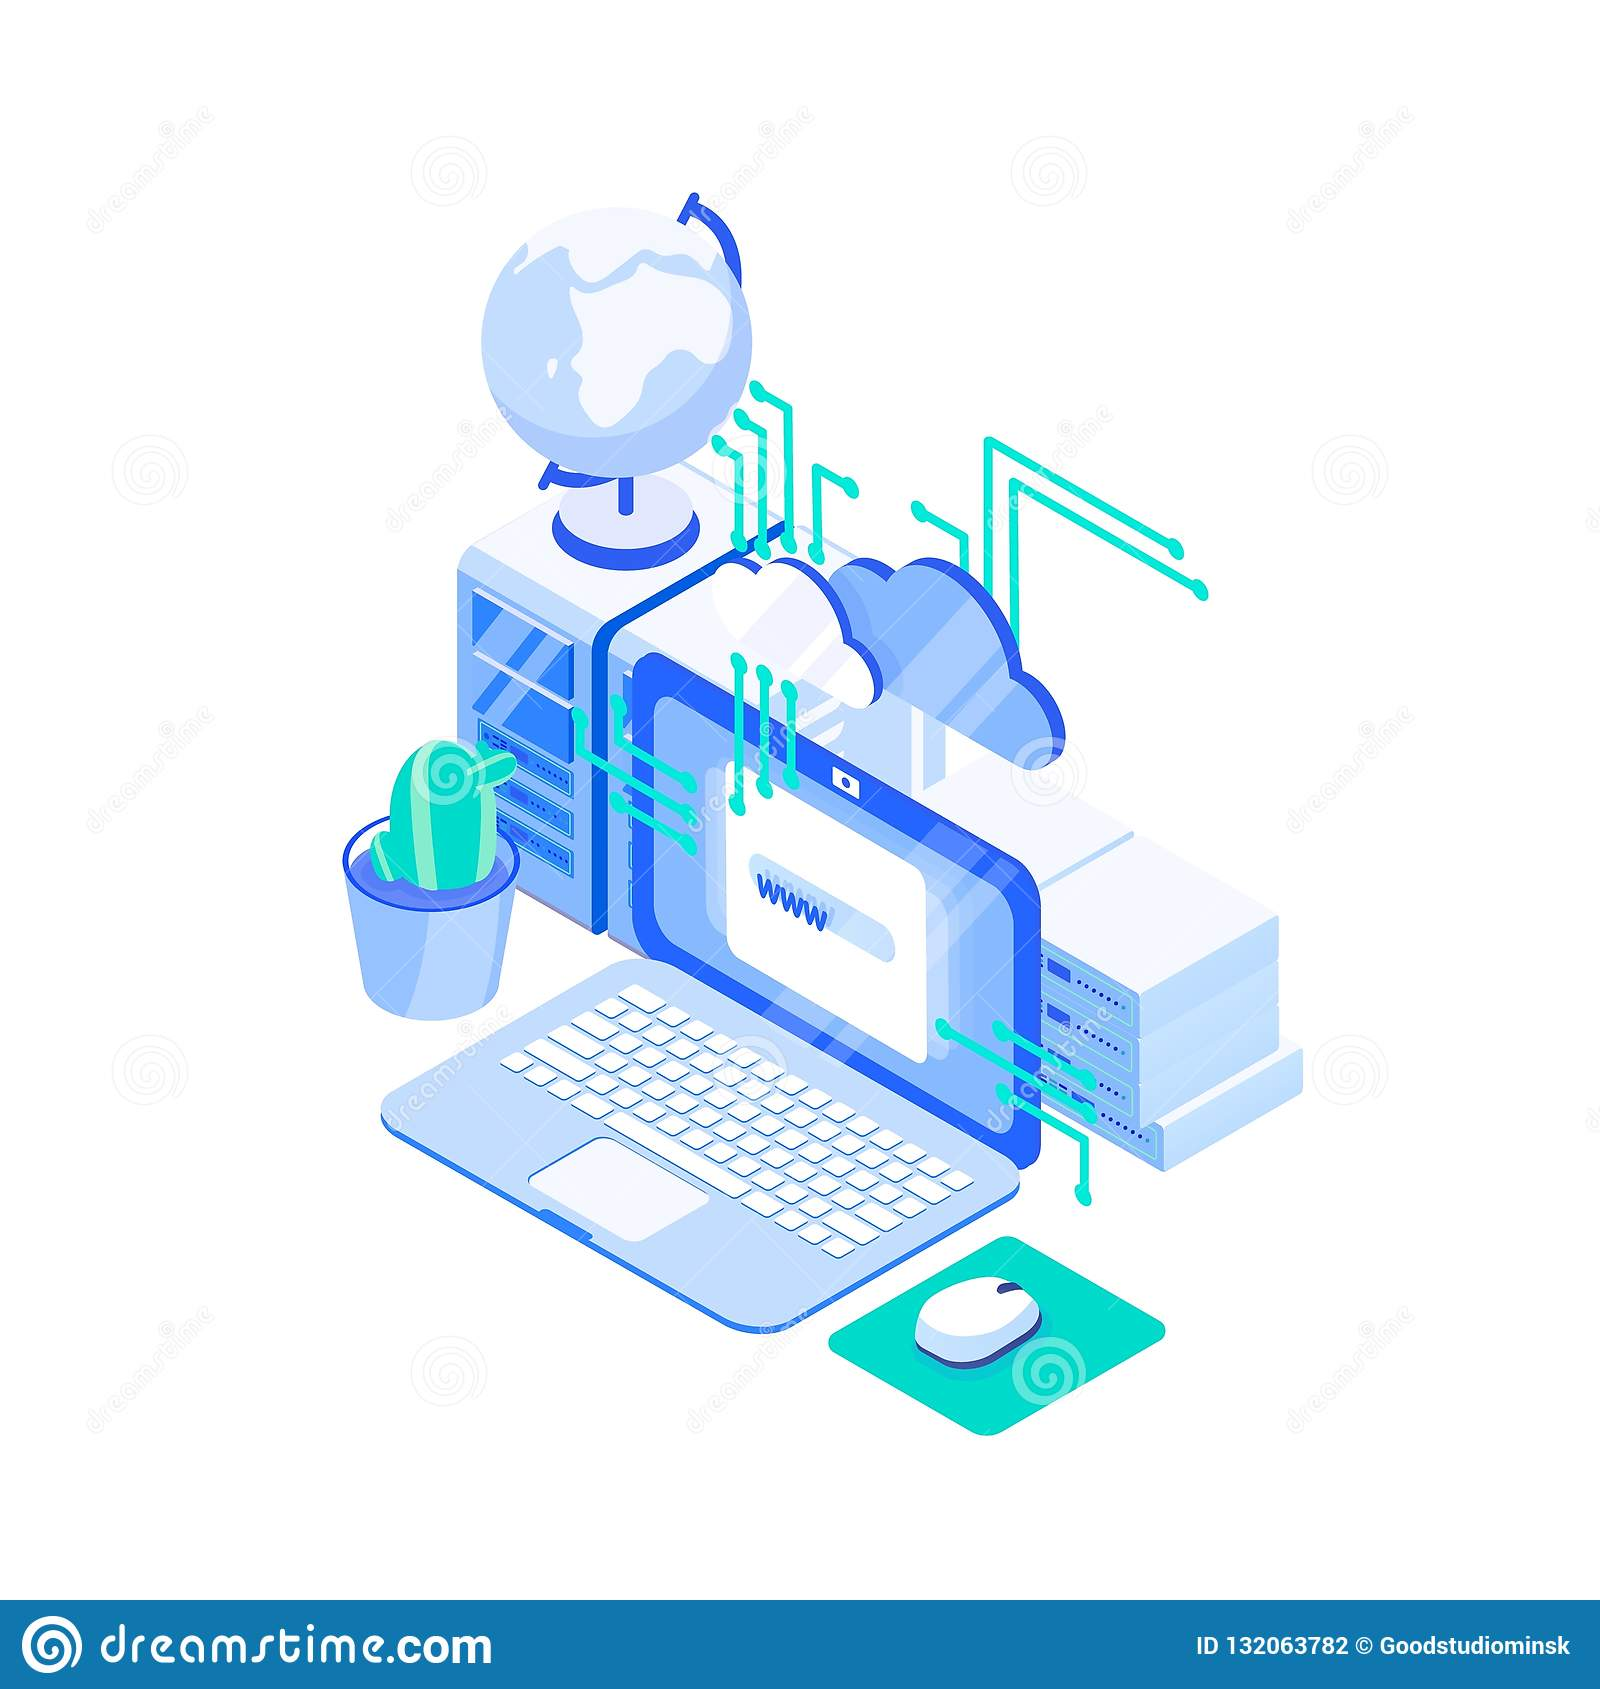 Laptop computer, stack of servers and globe. Web or internet hosting technology, online website support service, cloud